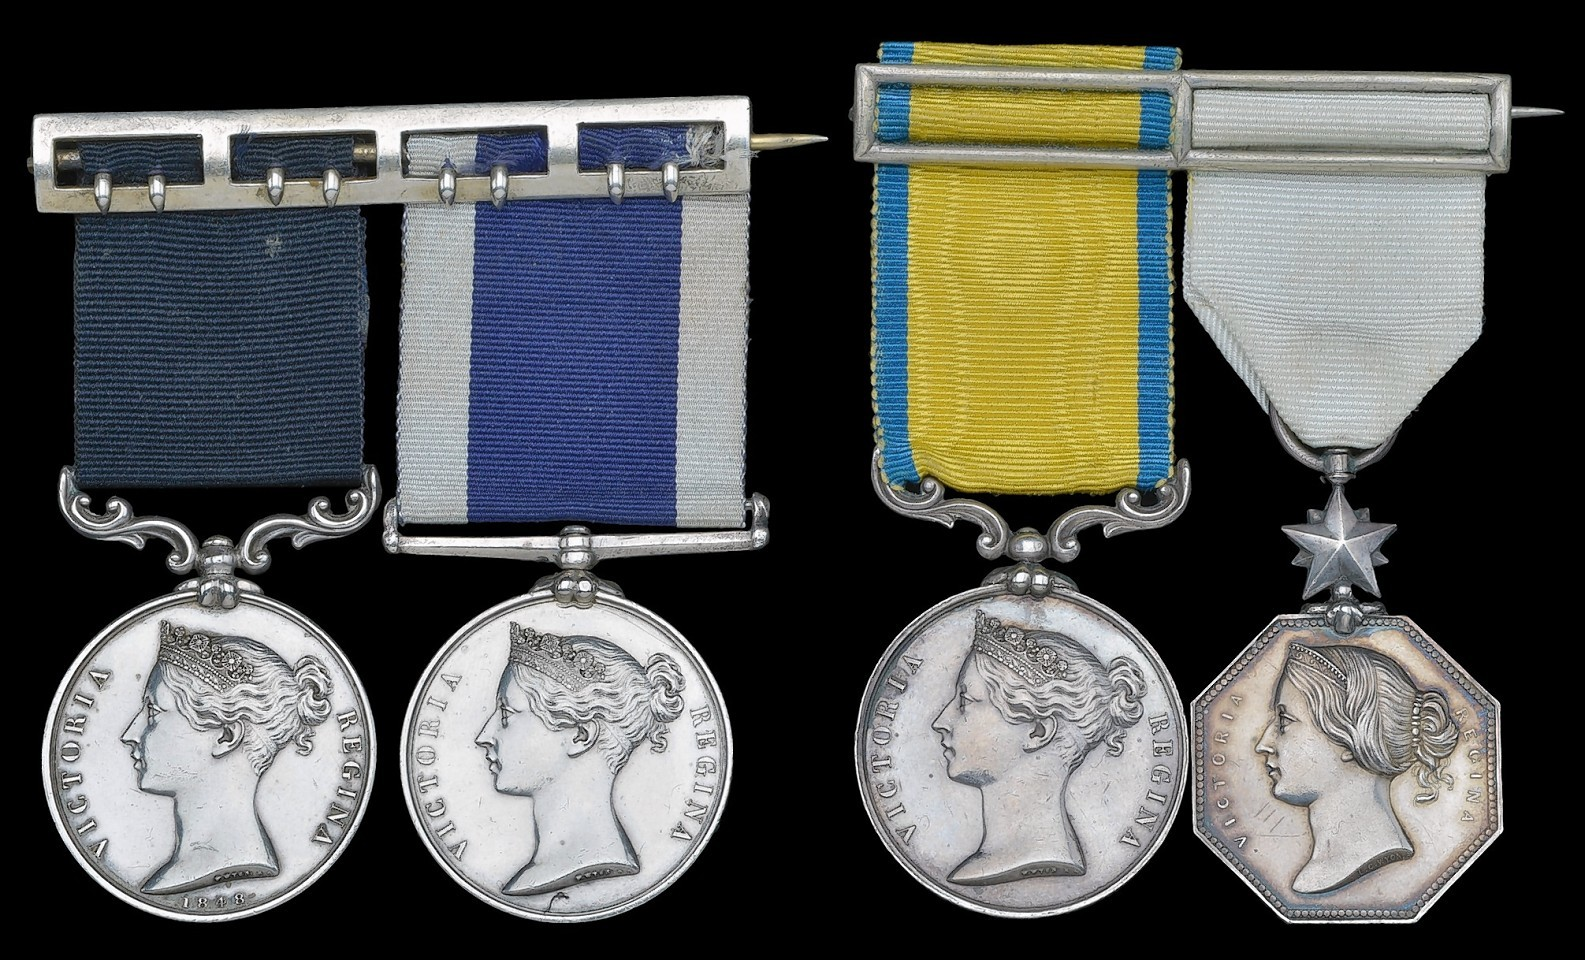 James and George Bute Medals